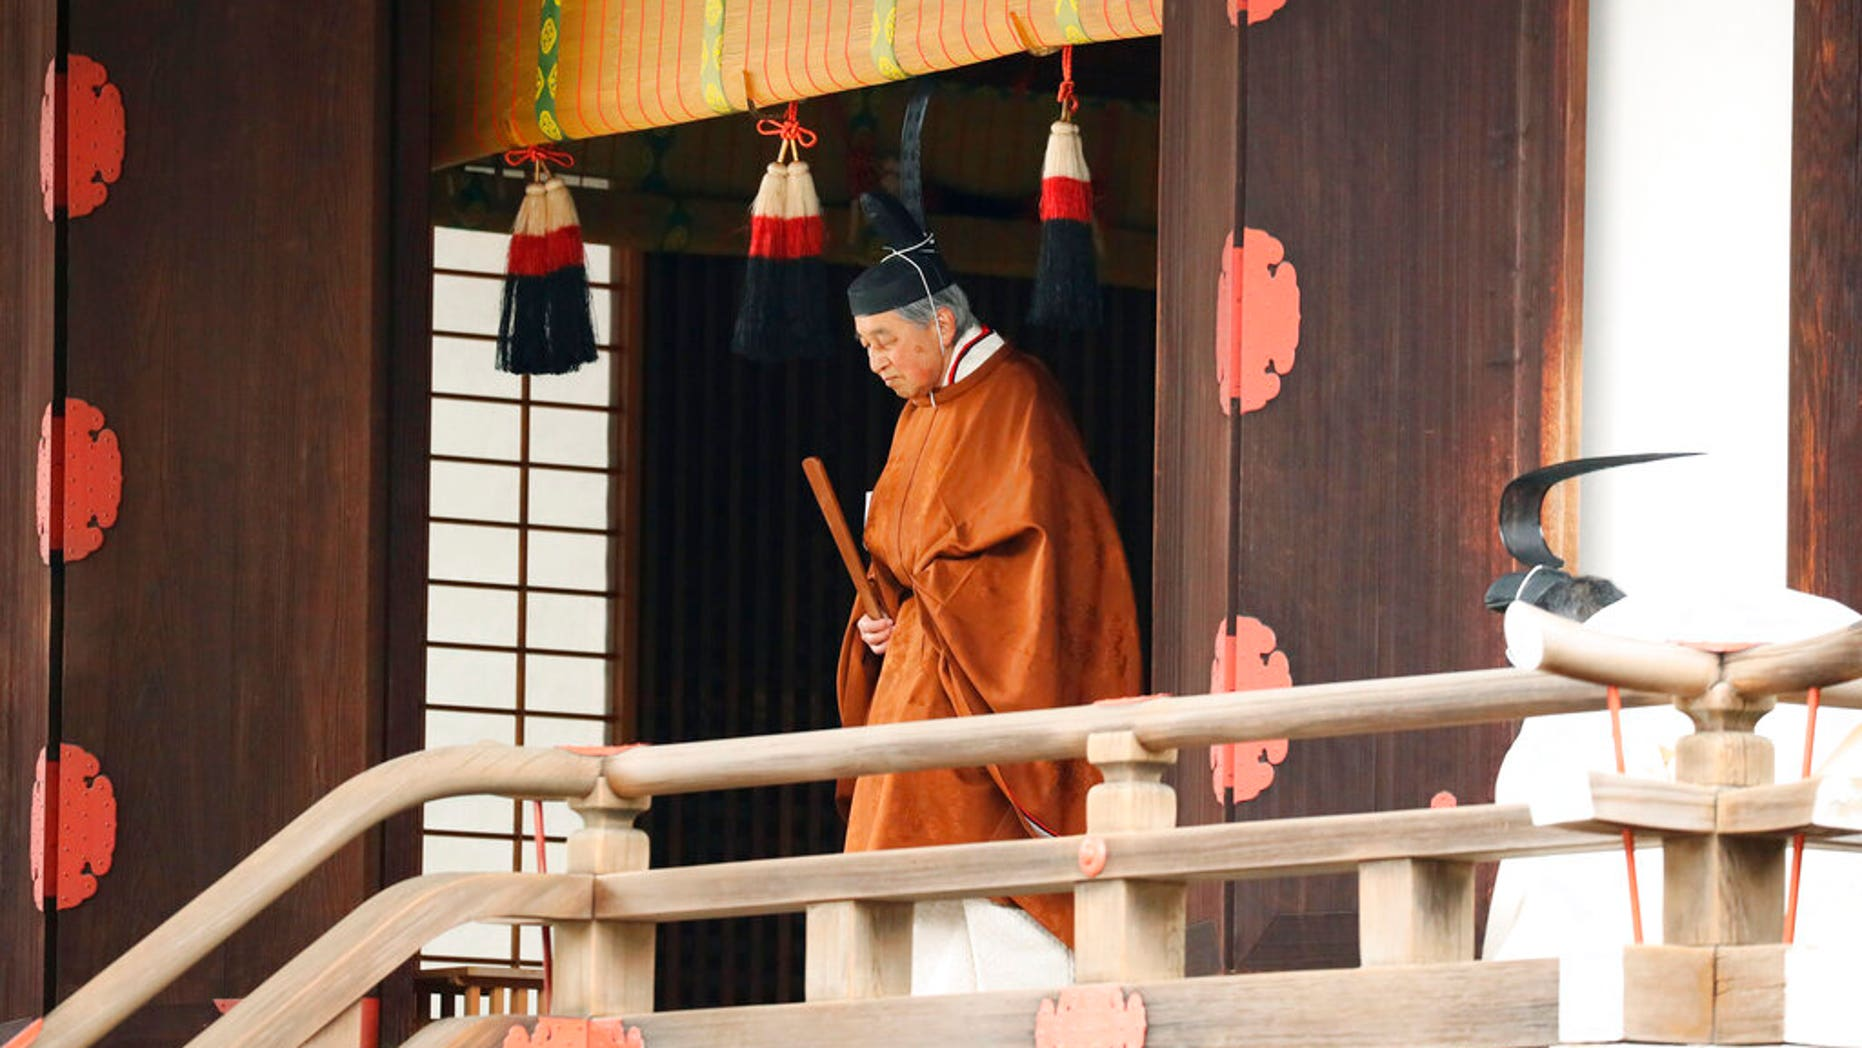 Japan's new emperor Naruhito to ascend Chrysanthemum Throne